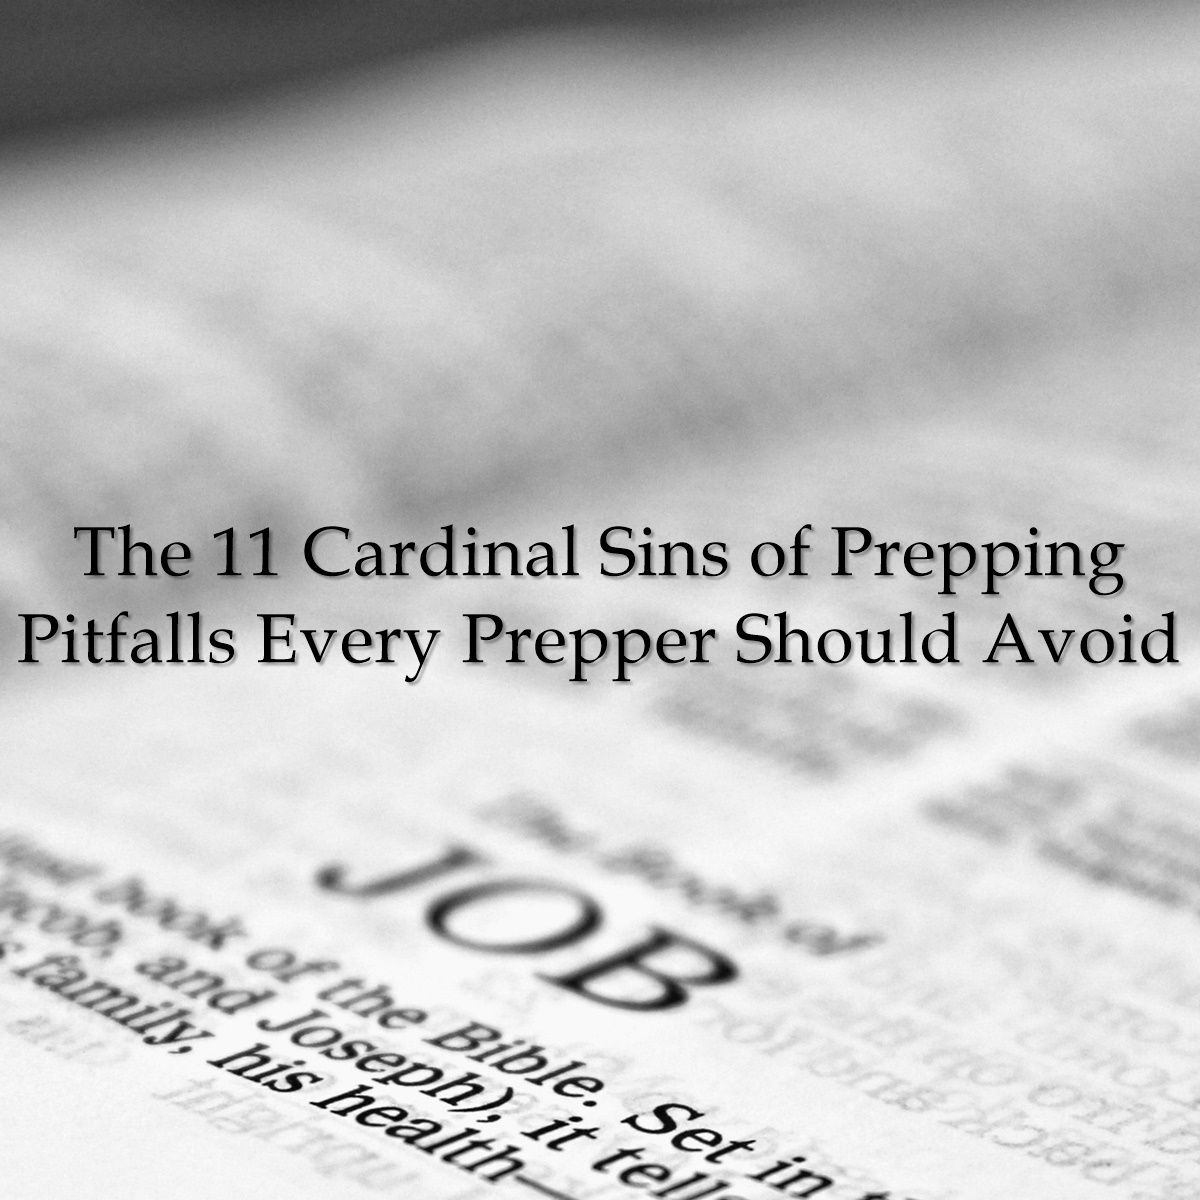 The 11 Cardinal Sins of Prepping - Pitfalls Every Prepper Should Avoid